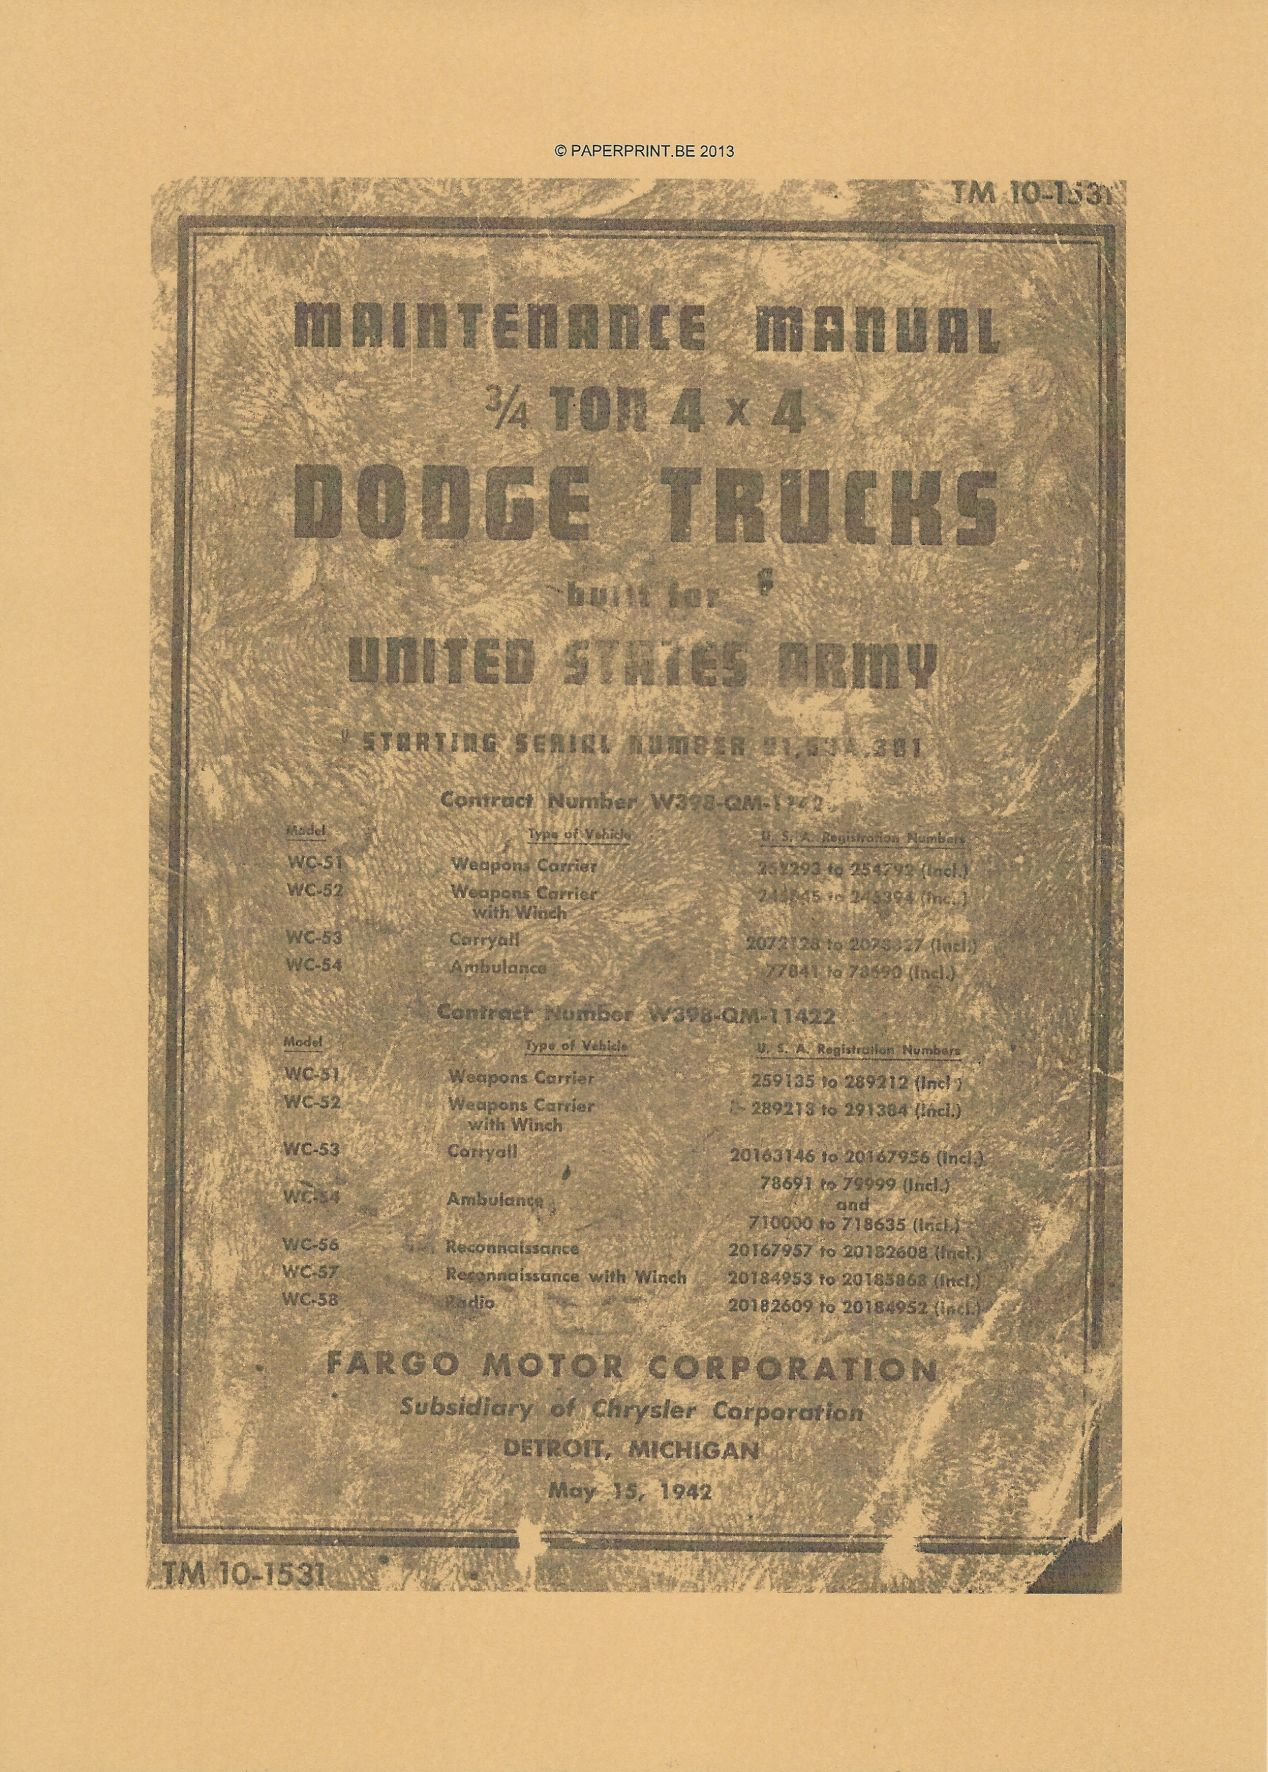 TM 10-1531 US MAINTENANCE MANUAL ¾ TON 4x4 DODGE TRUCKS